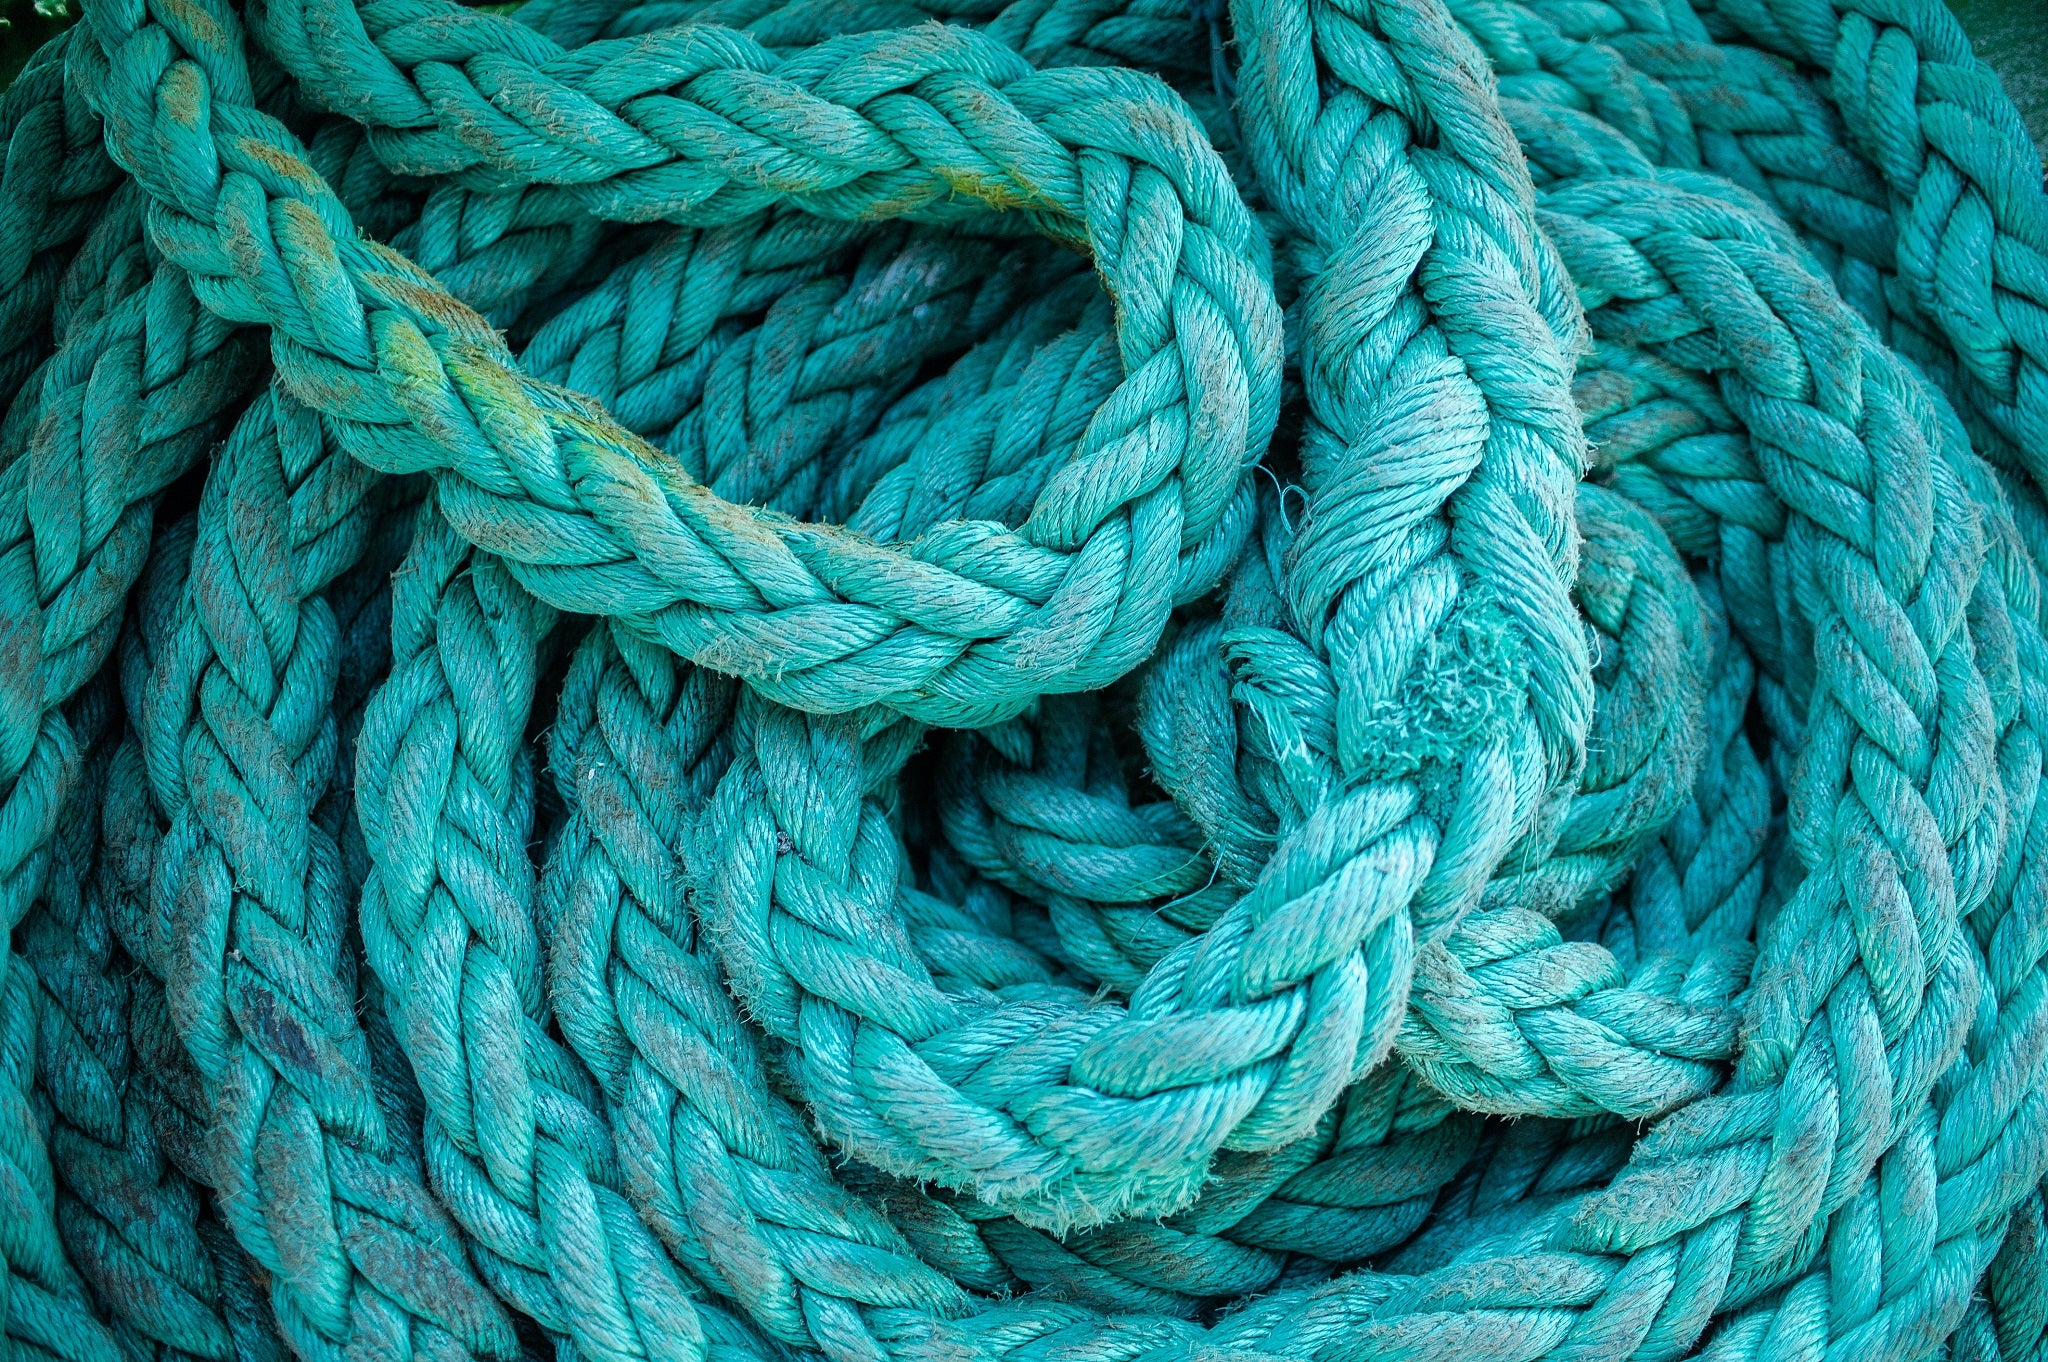 green rope in a tangle